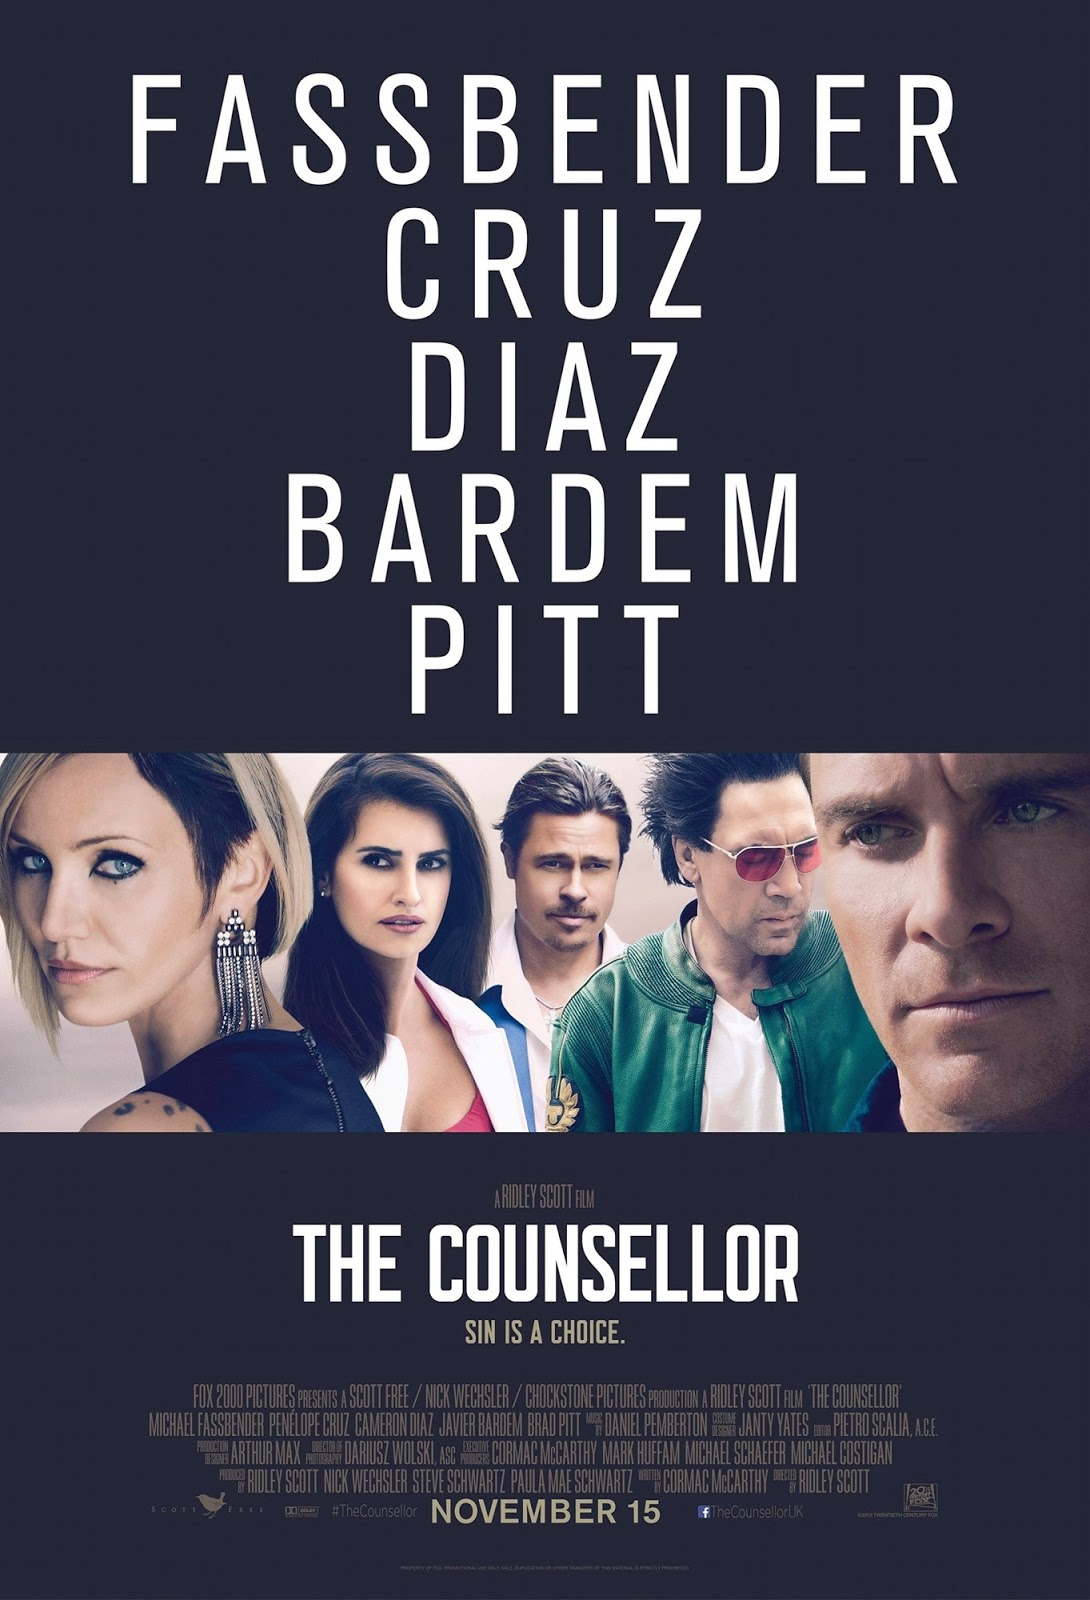 The Counselor, Movie Poster, Directed by Ridley Scott